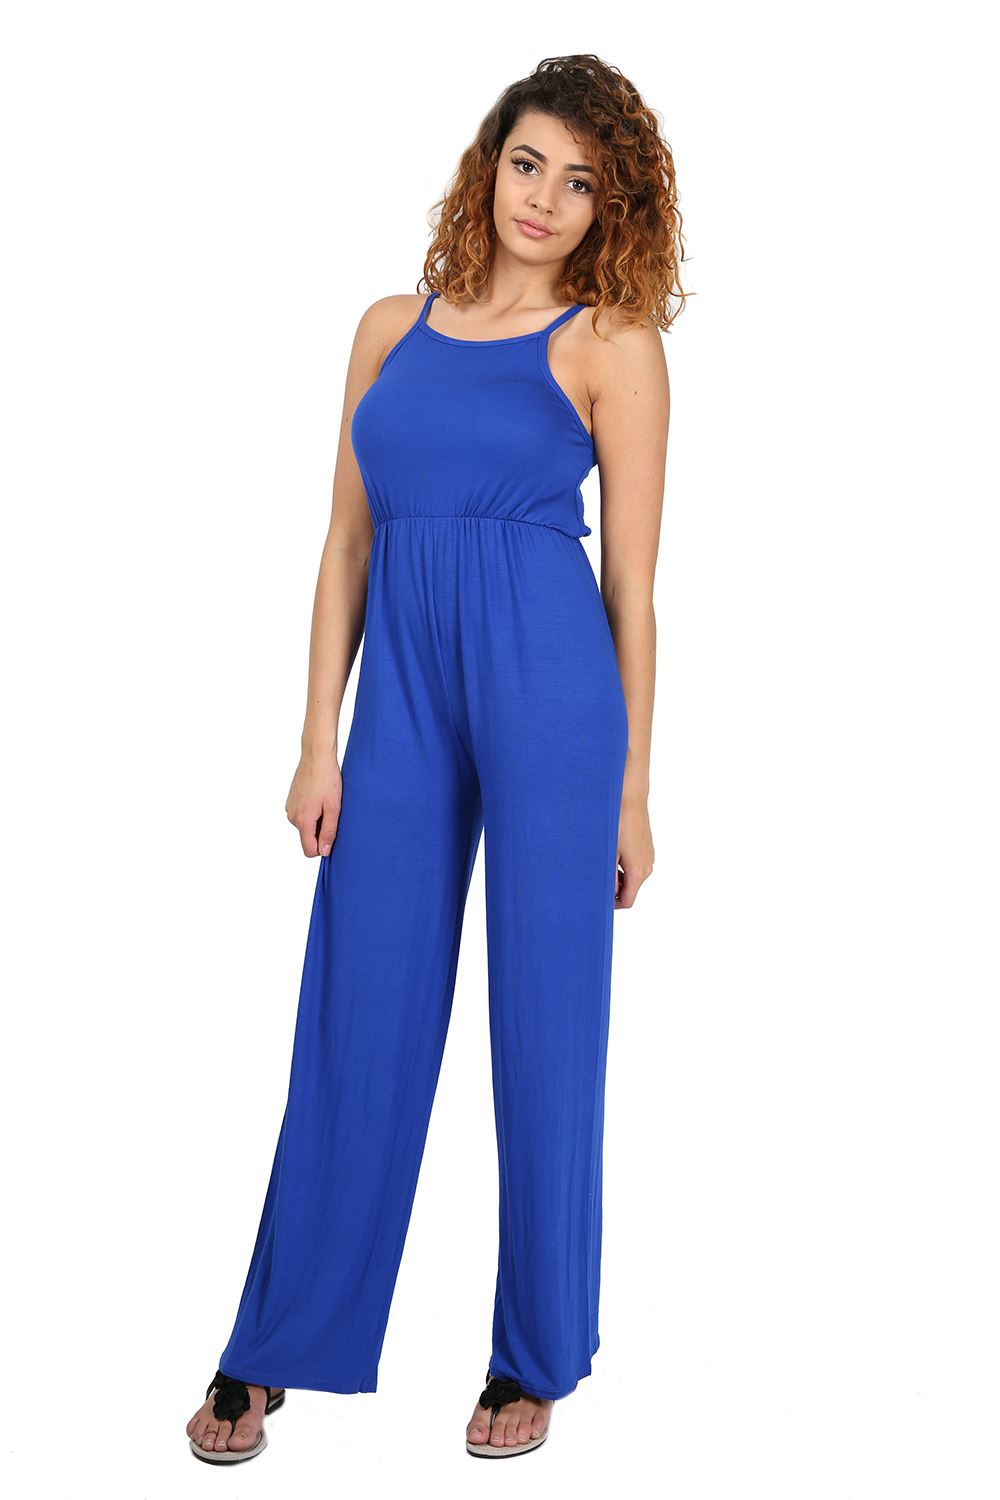 Womens Ladies All In One Square Neck Wide Leg Palazzo Playsuit Jumpsuit UK 8-22 | EBay